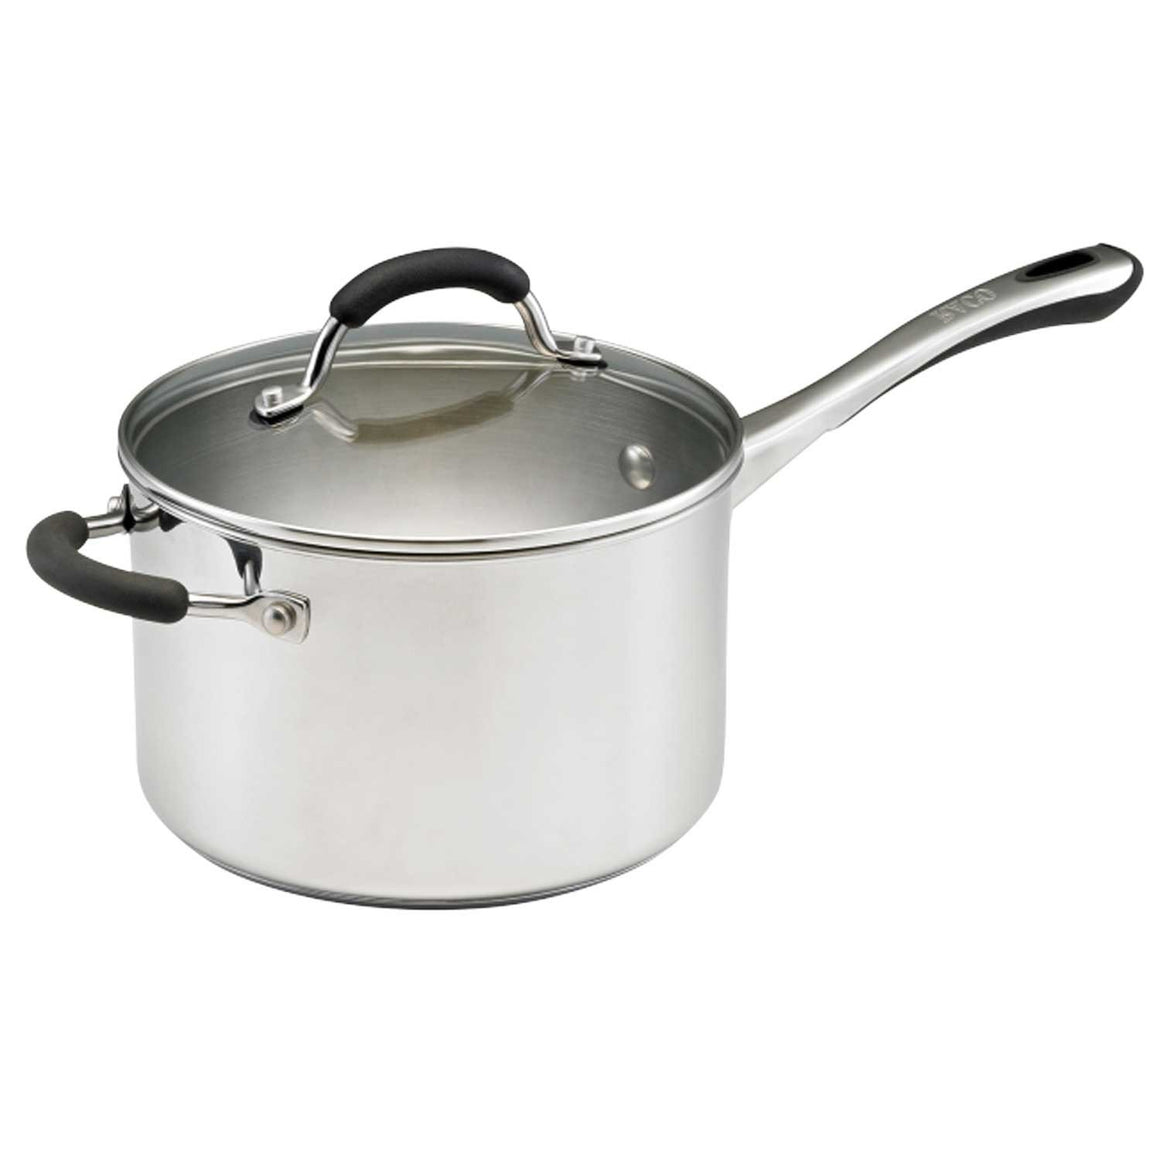 Raco Contemporary Stainless Steel Saucepan 20cm/3.8L - stuff-n-things